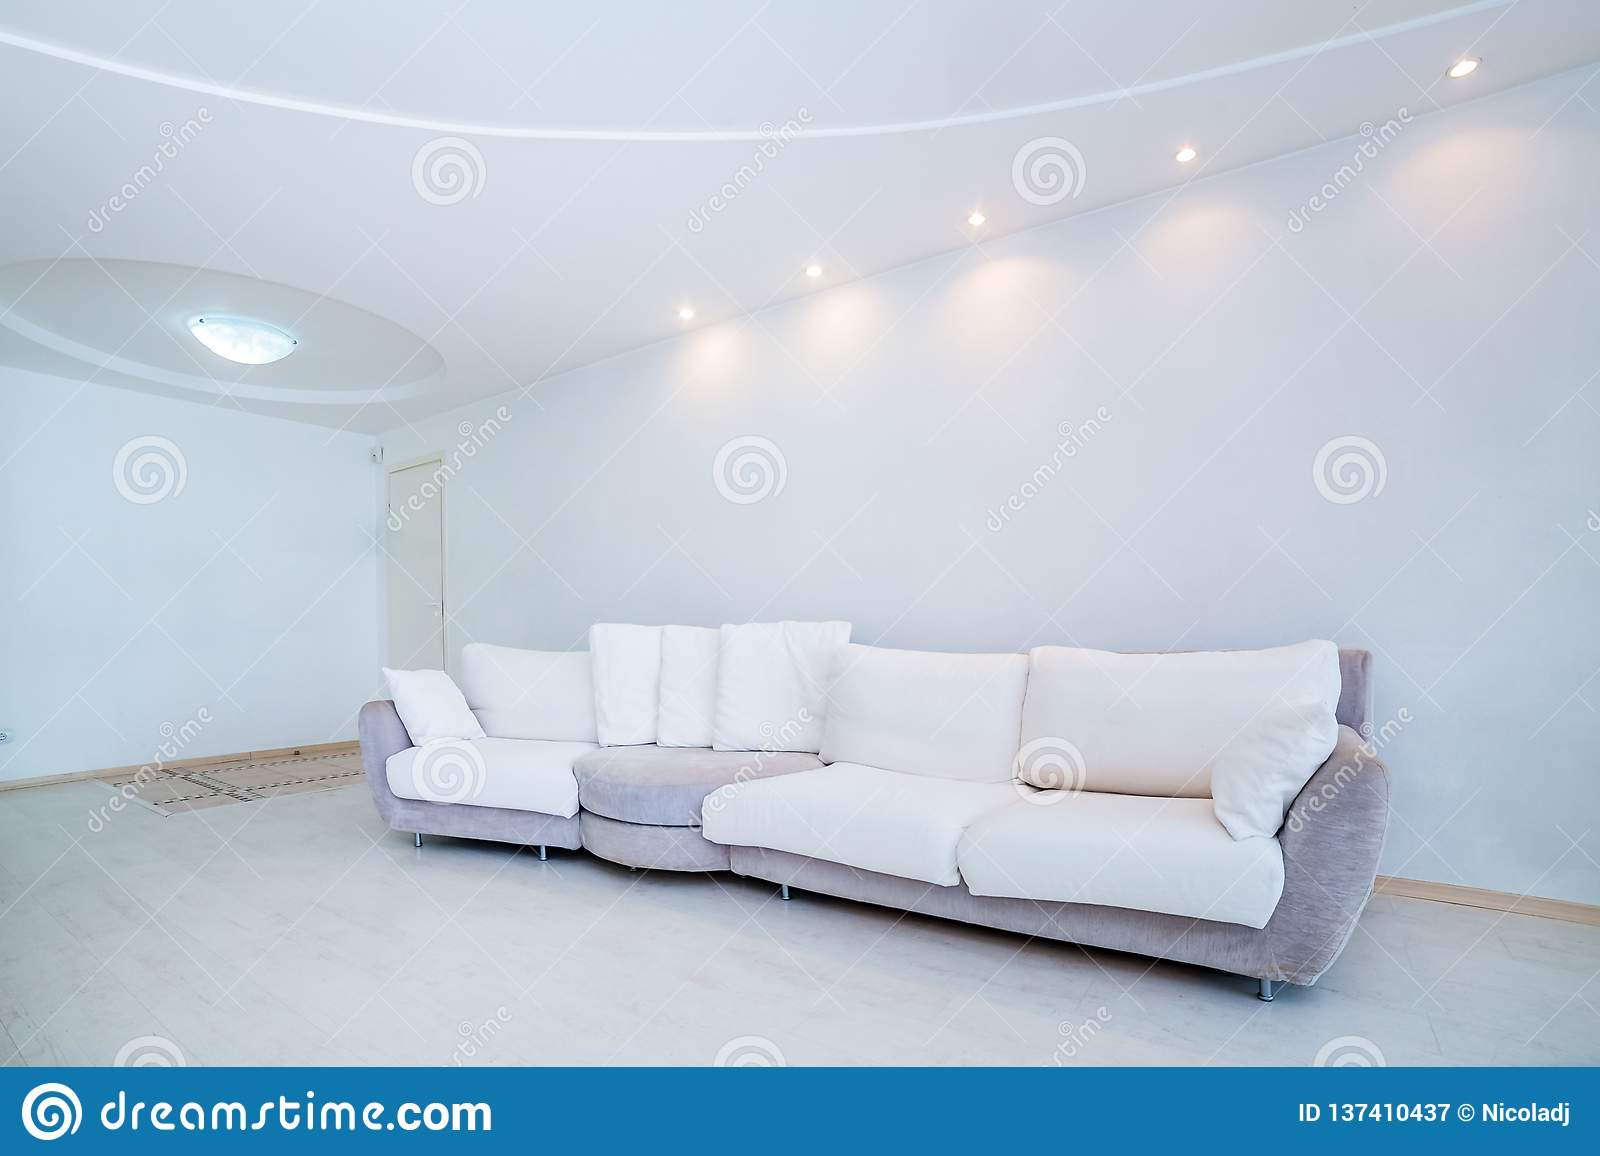 The bright white room with a sofa